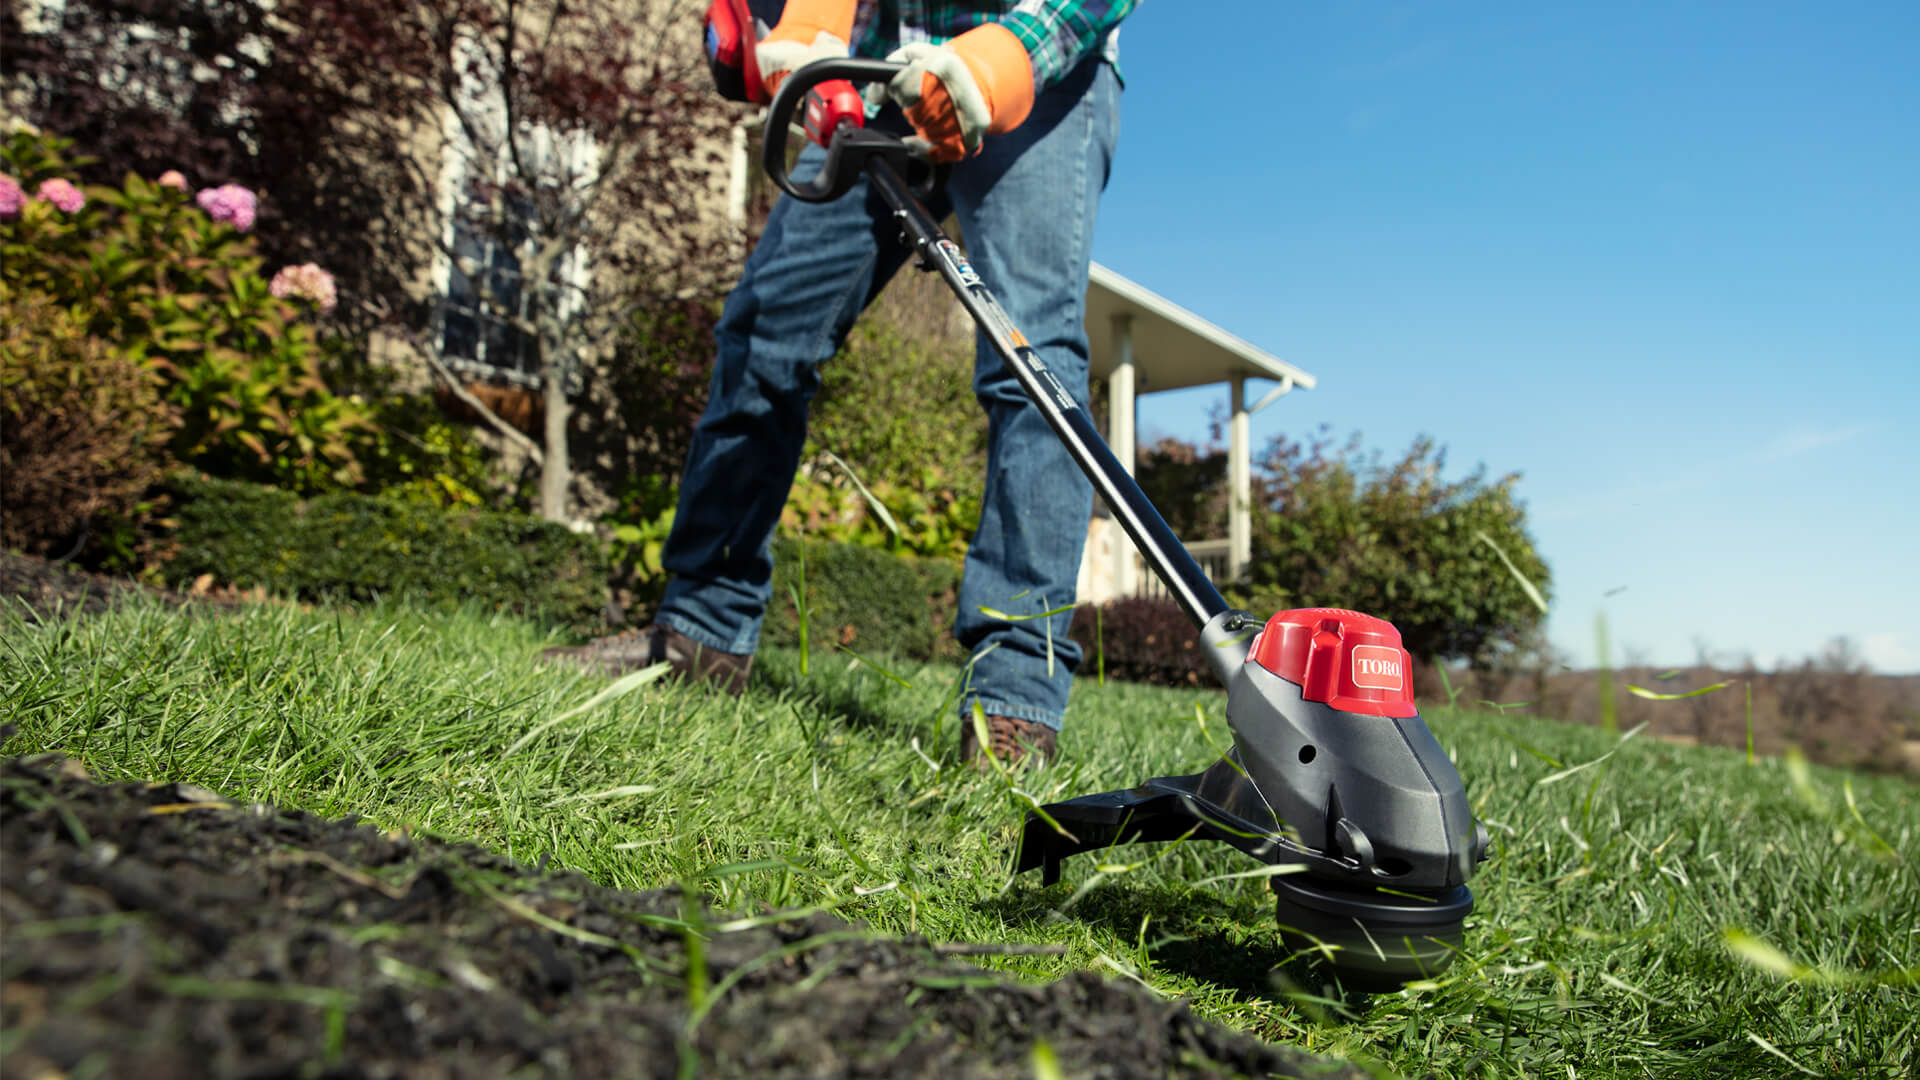 Toro String Trimmer in action